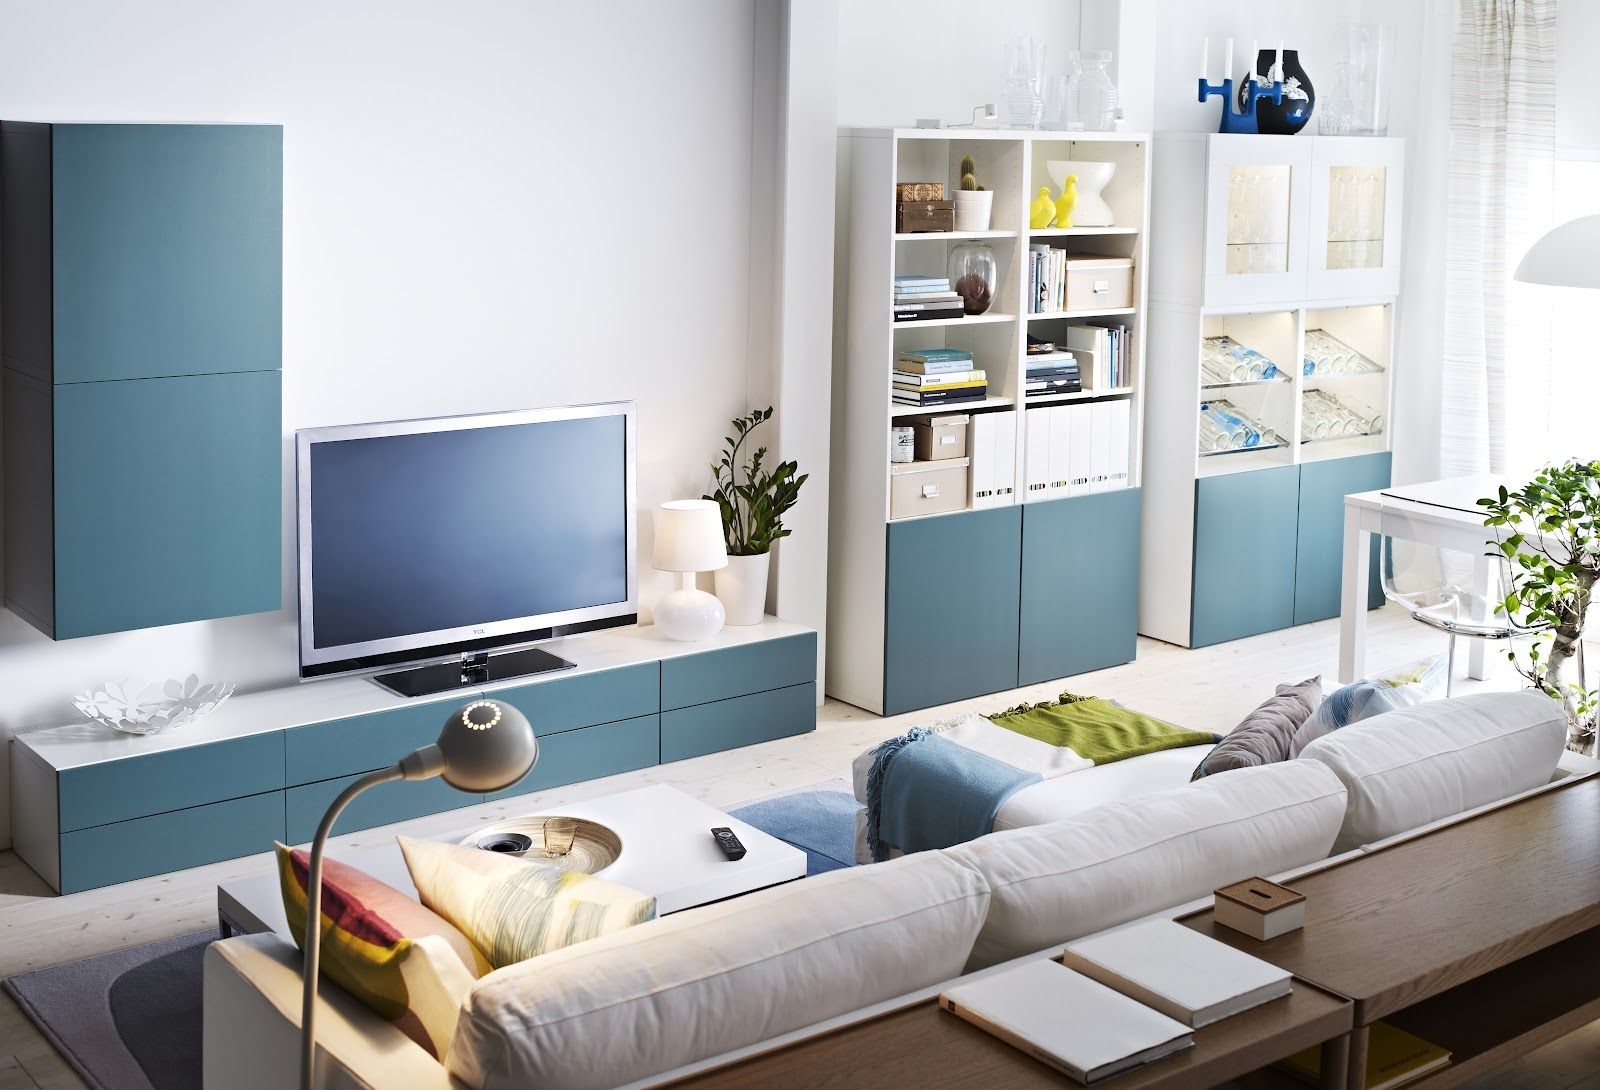 elegant interior room design with stunning ikea interior design ideas excellent blue living room design with comfortable white sofas and s